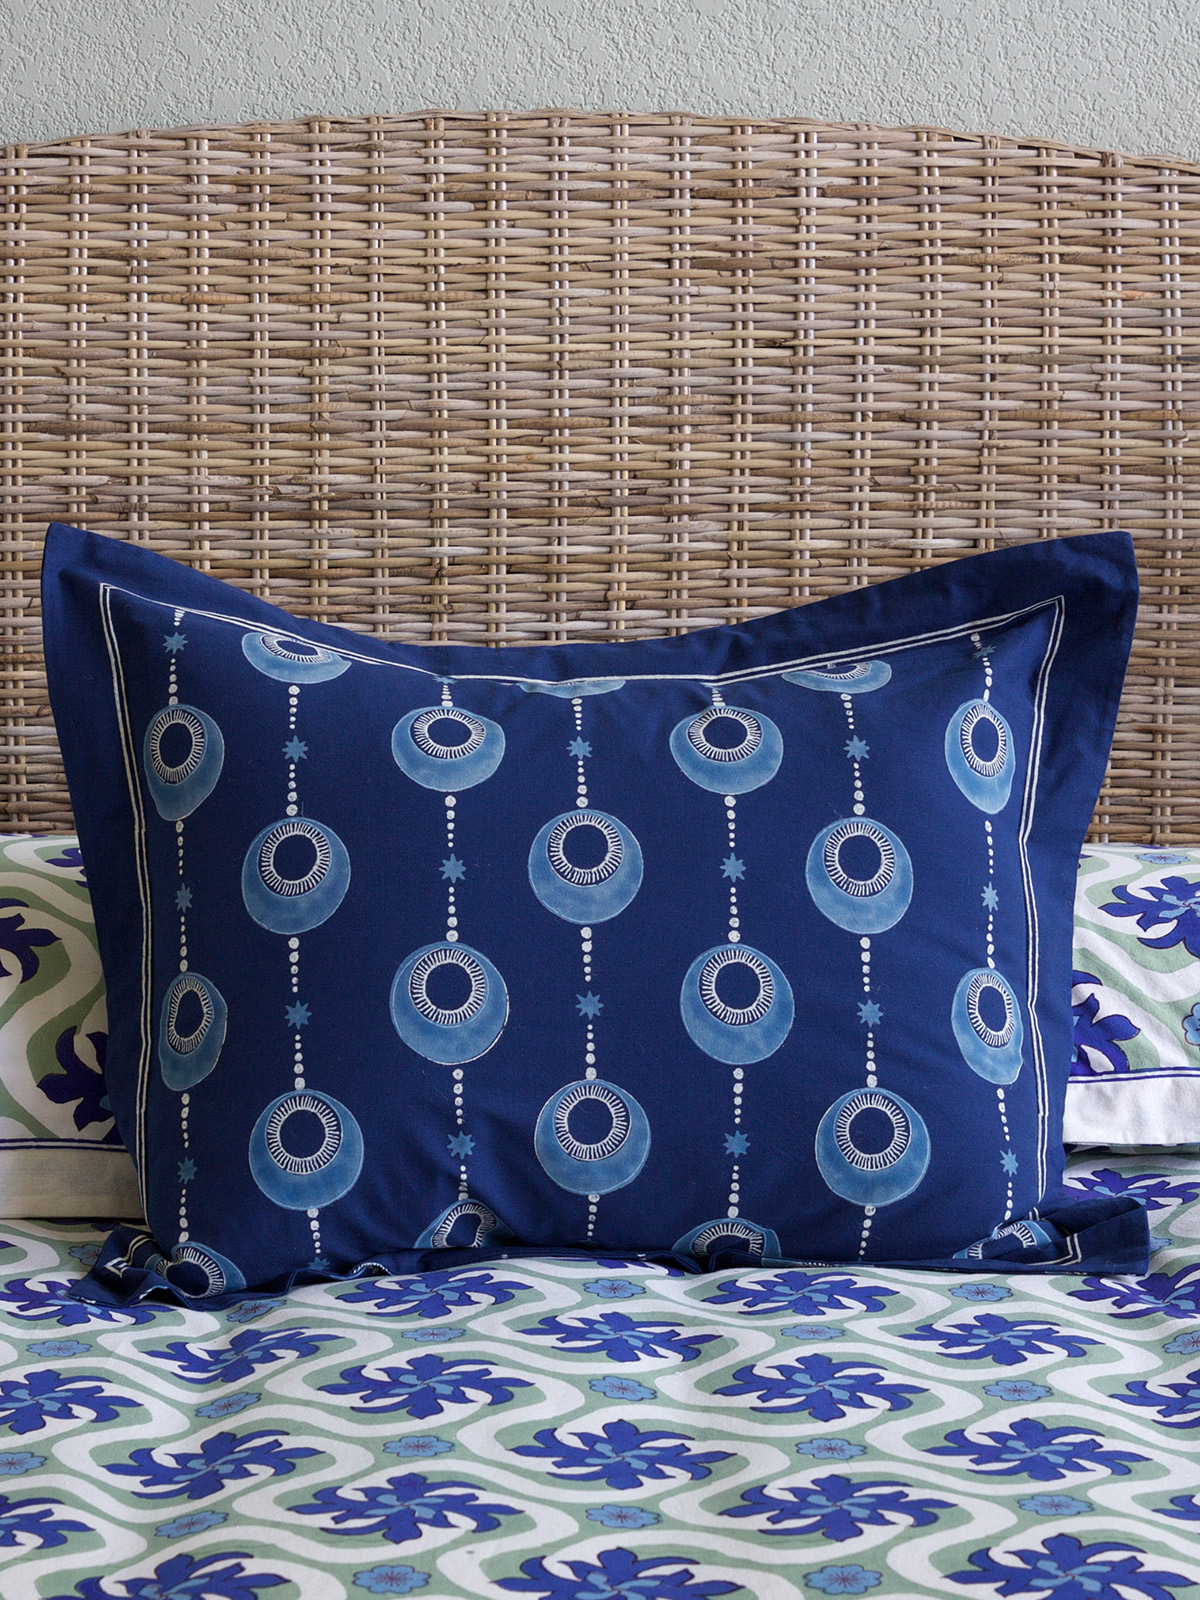 Celestial Embrace - Blue ~ Pillow Sham